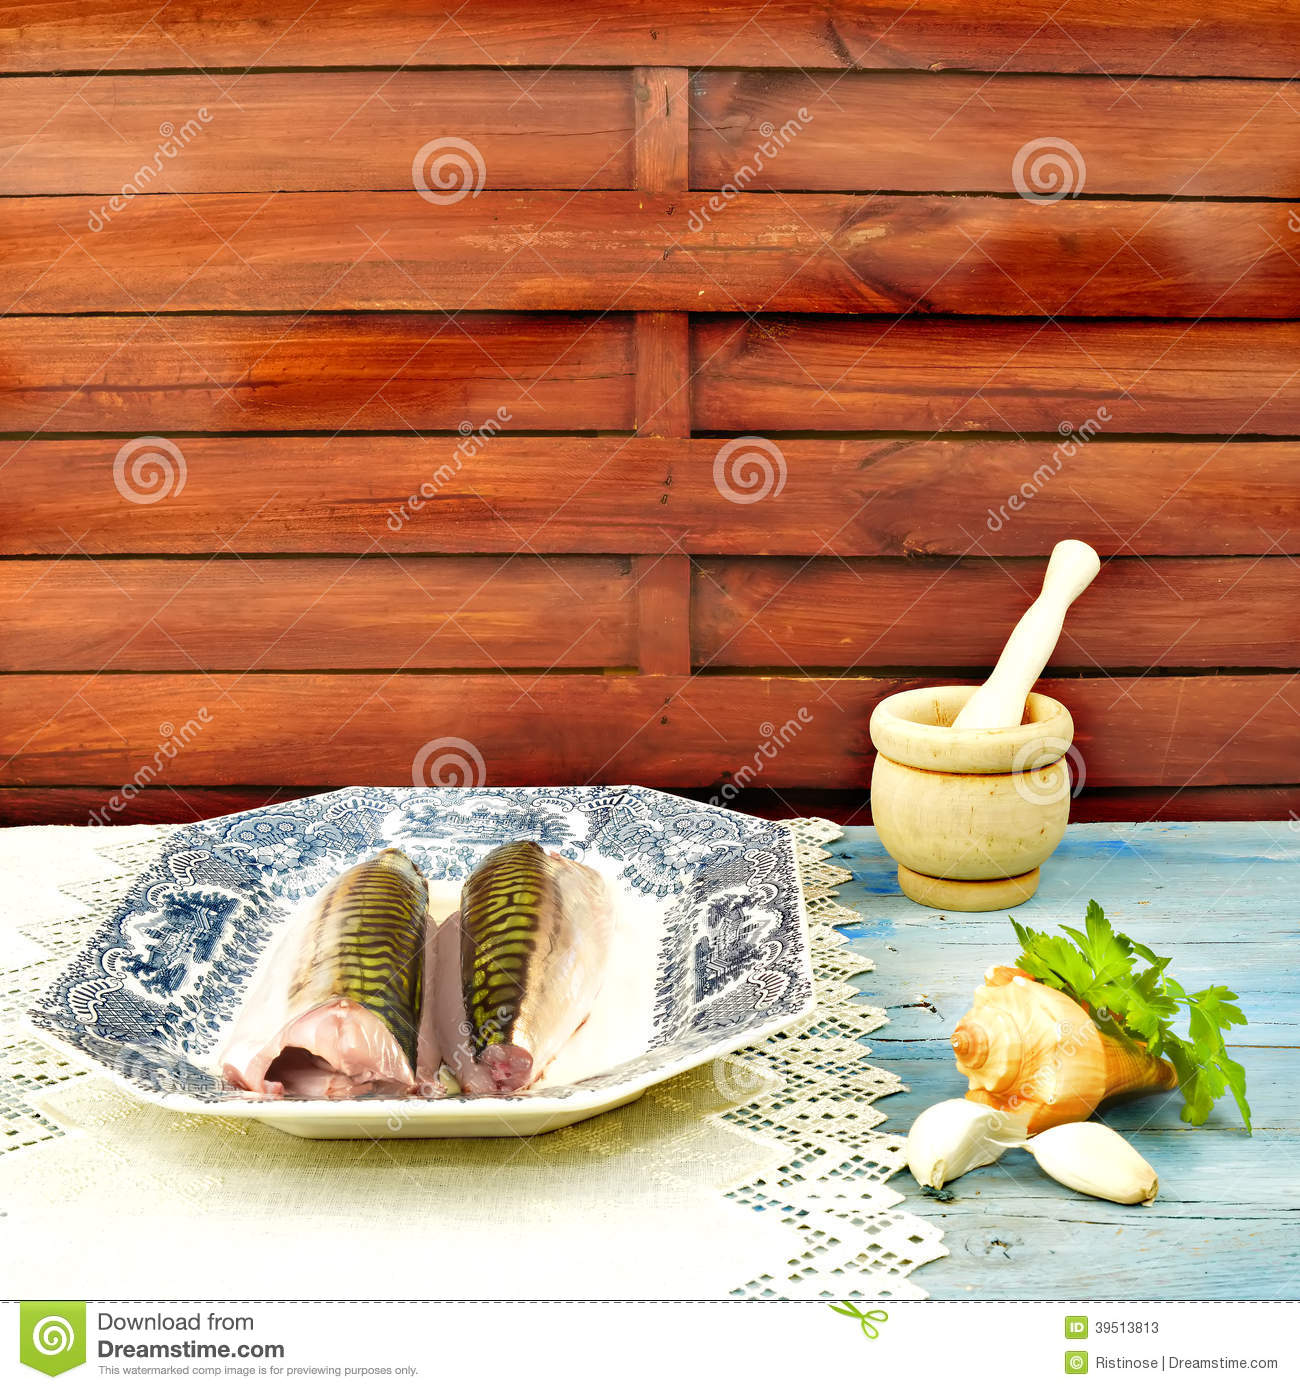 Tray of fish and cooking ingredients